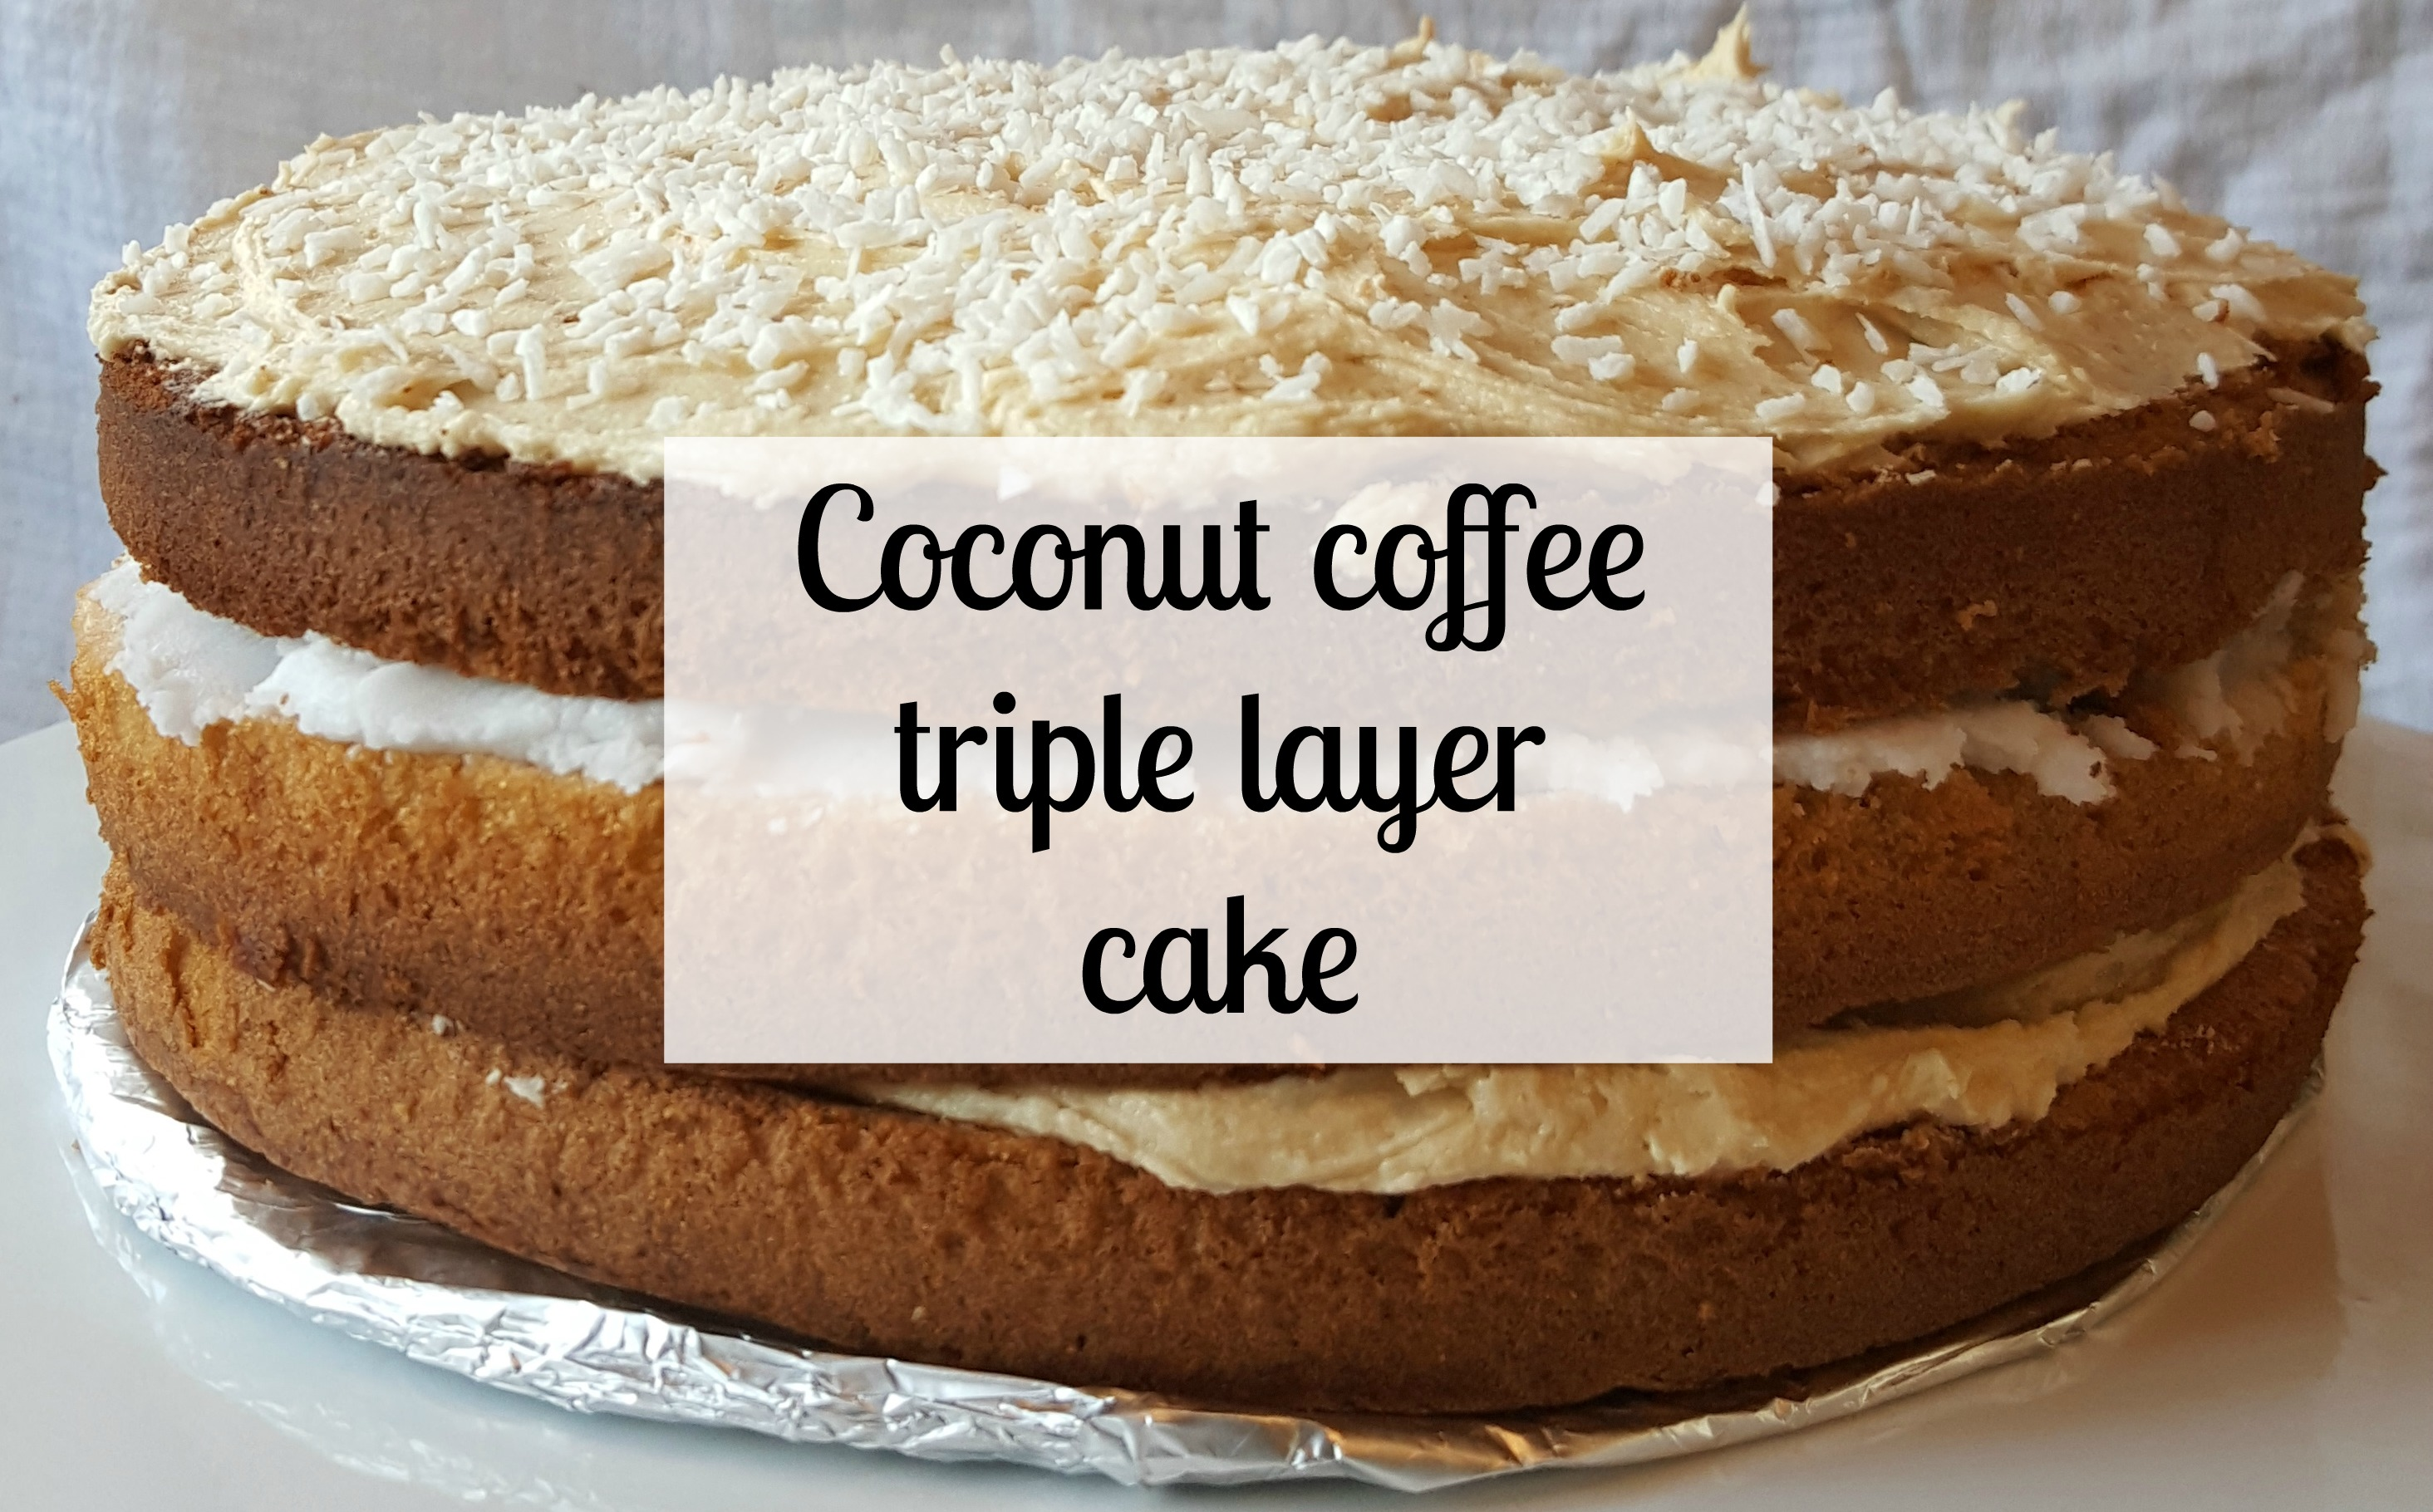 Coconut coffee triple layer cake